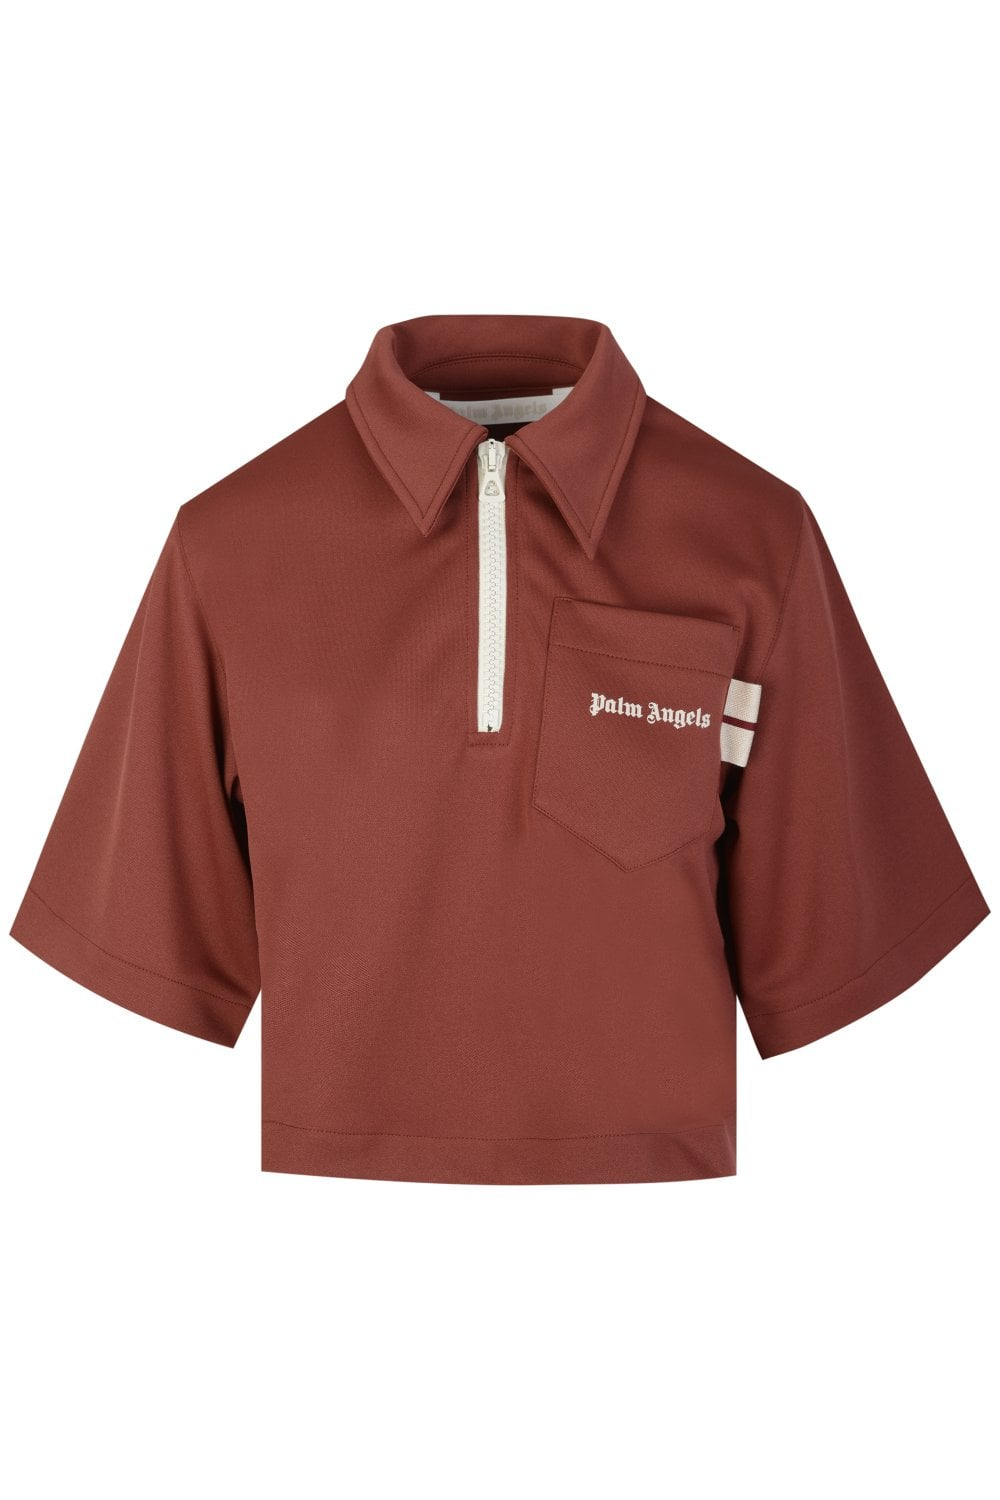 Palm Angels WOMENS TRACK POLO